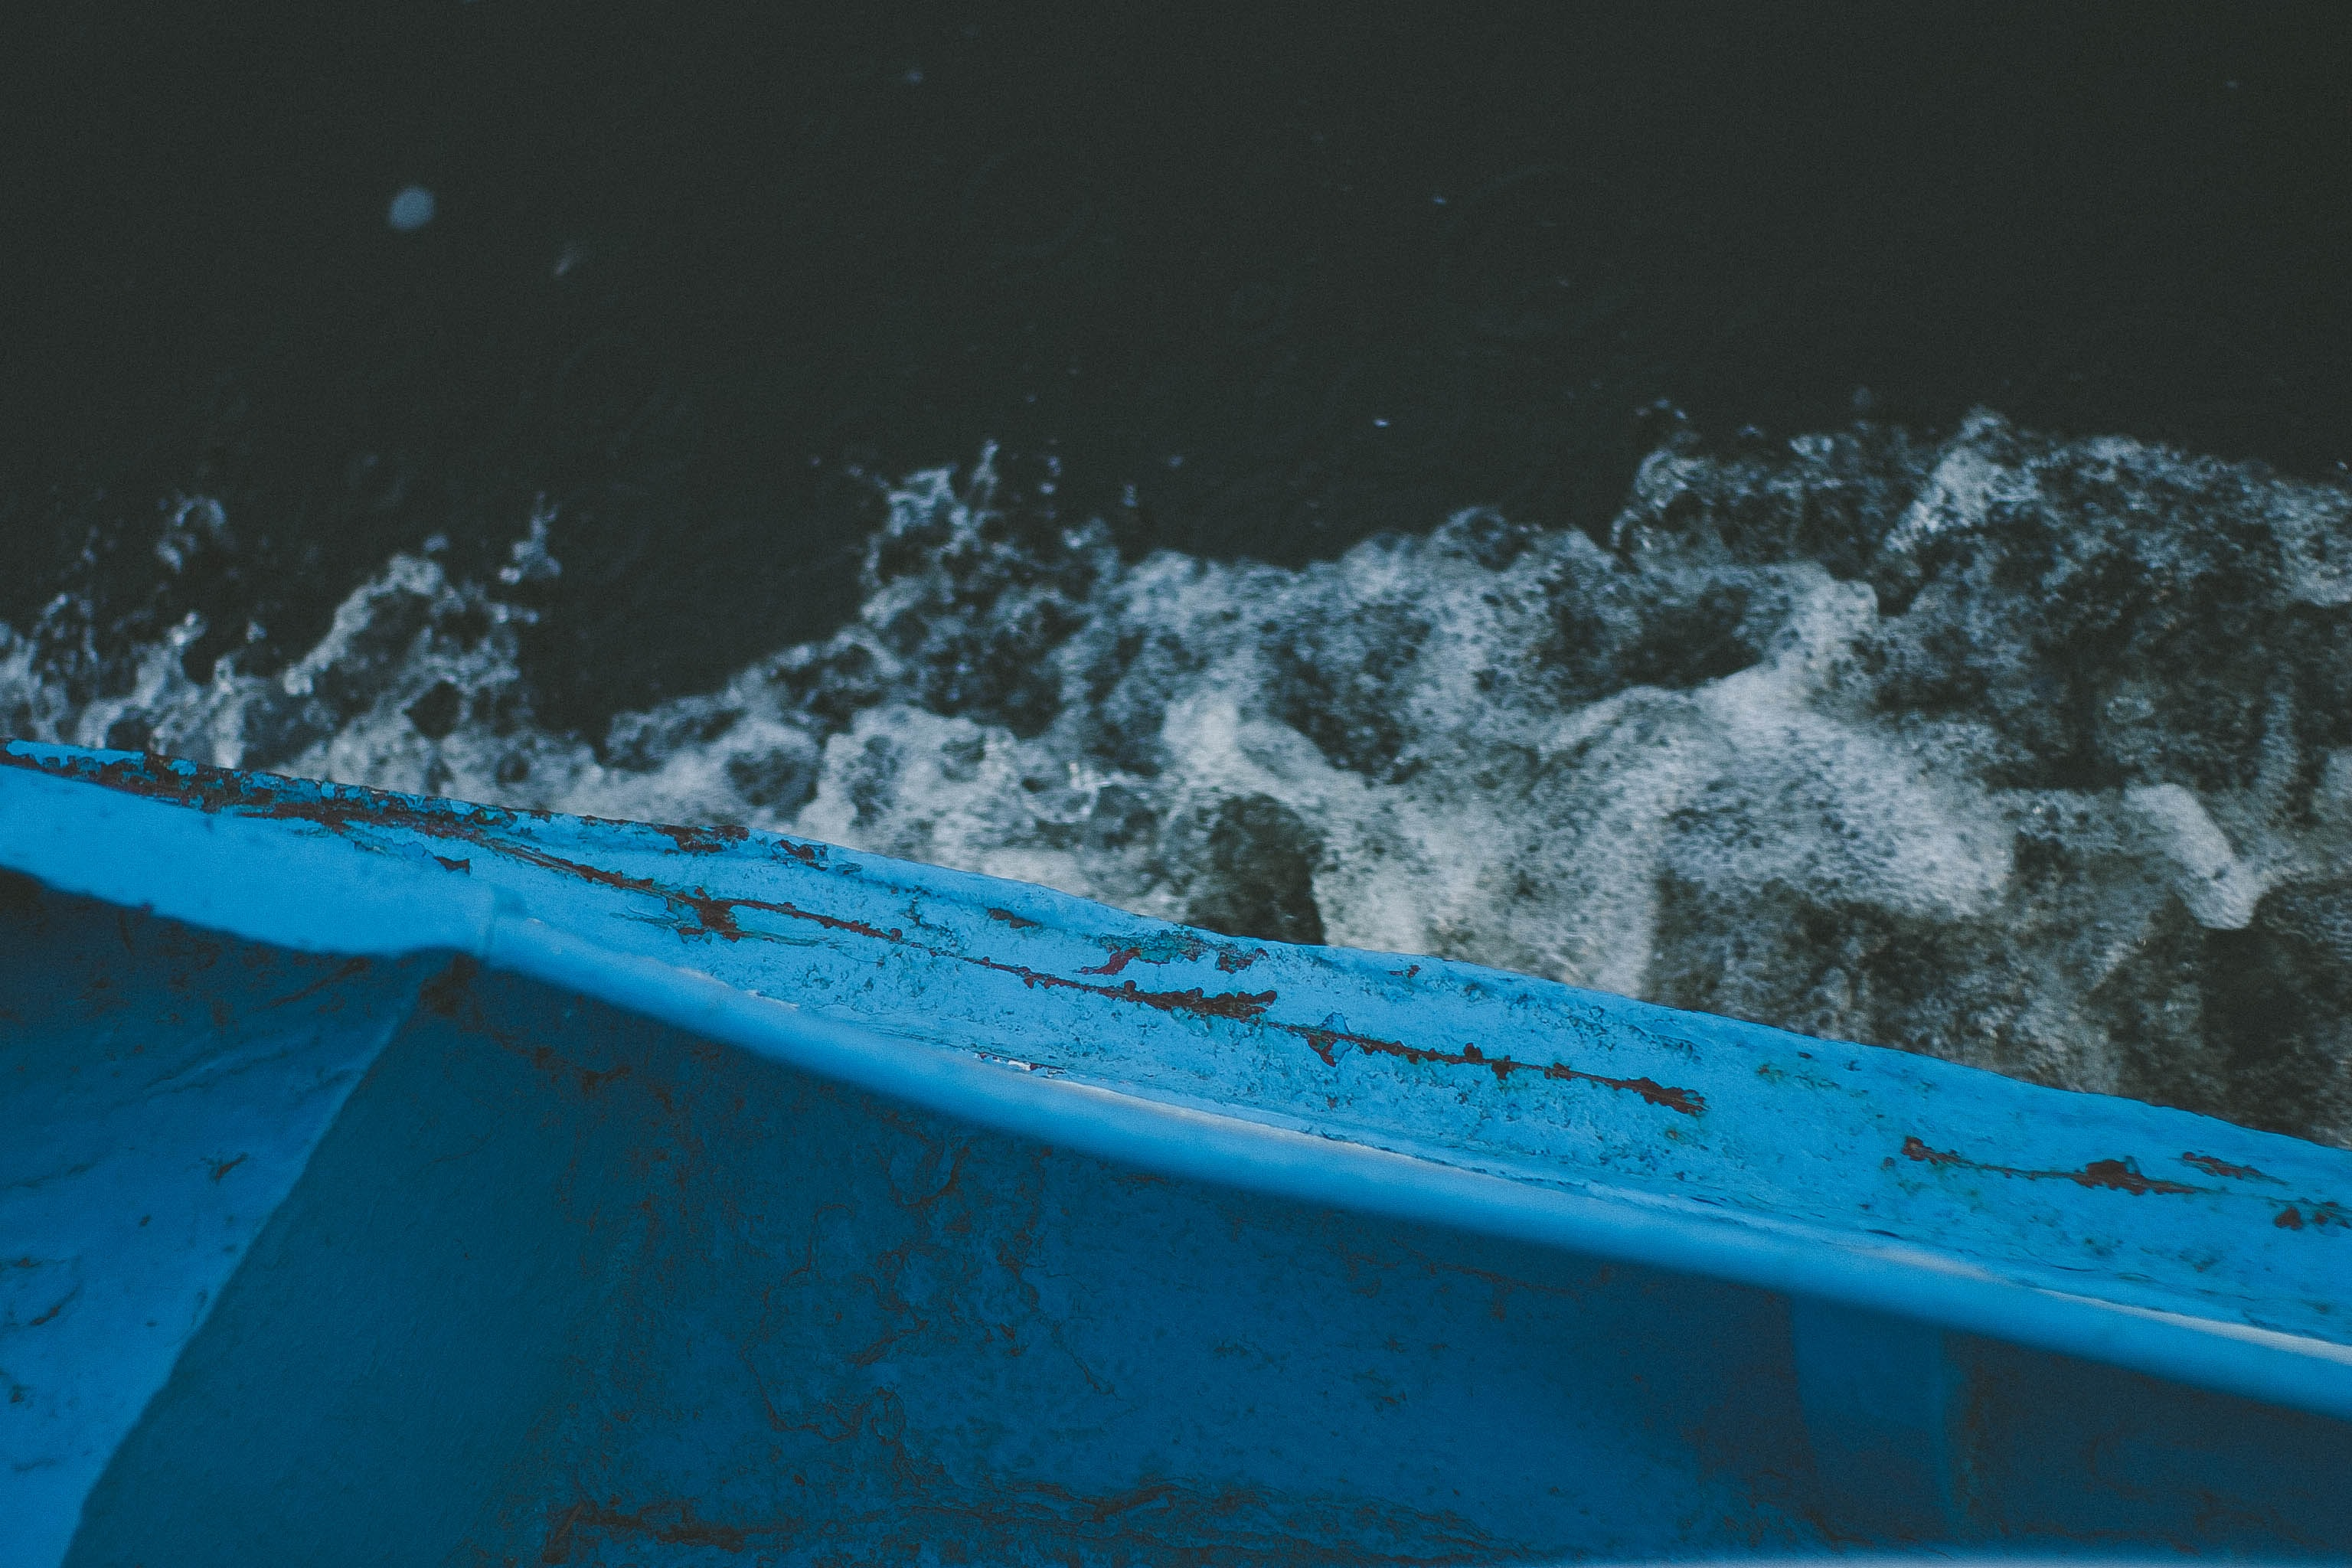 blue boat on body of water